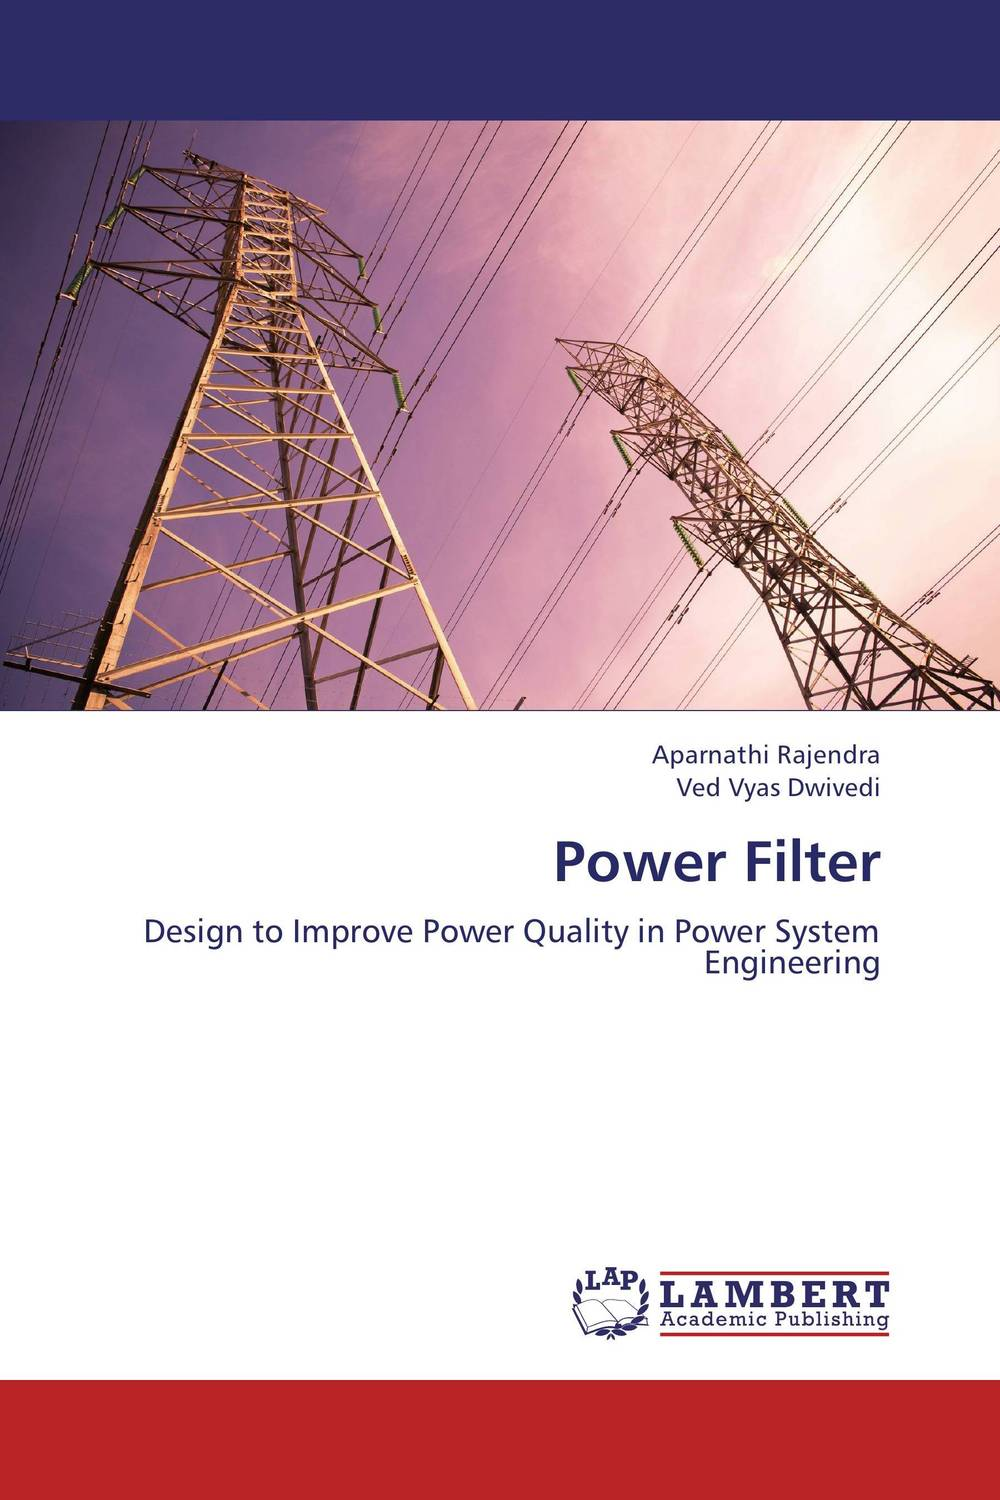 Power Filter power engineering ebook collection